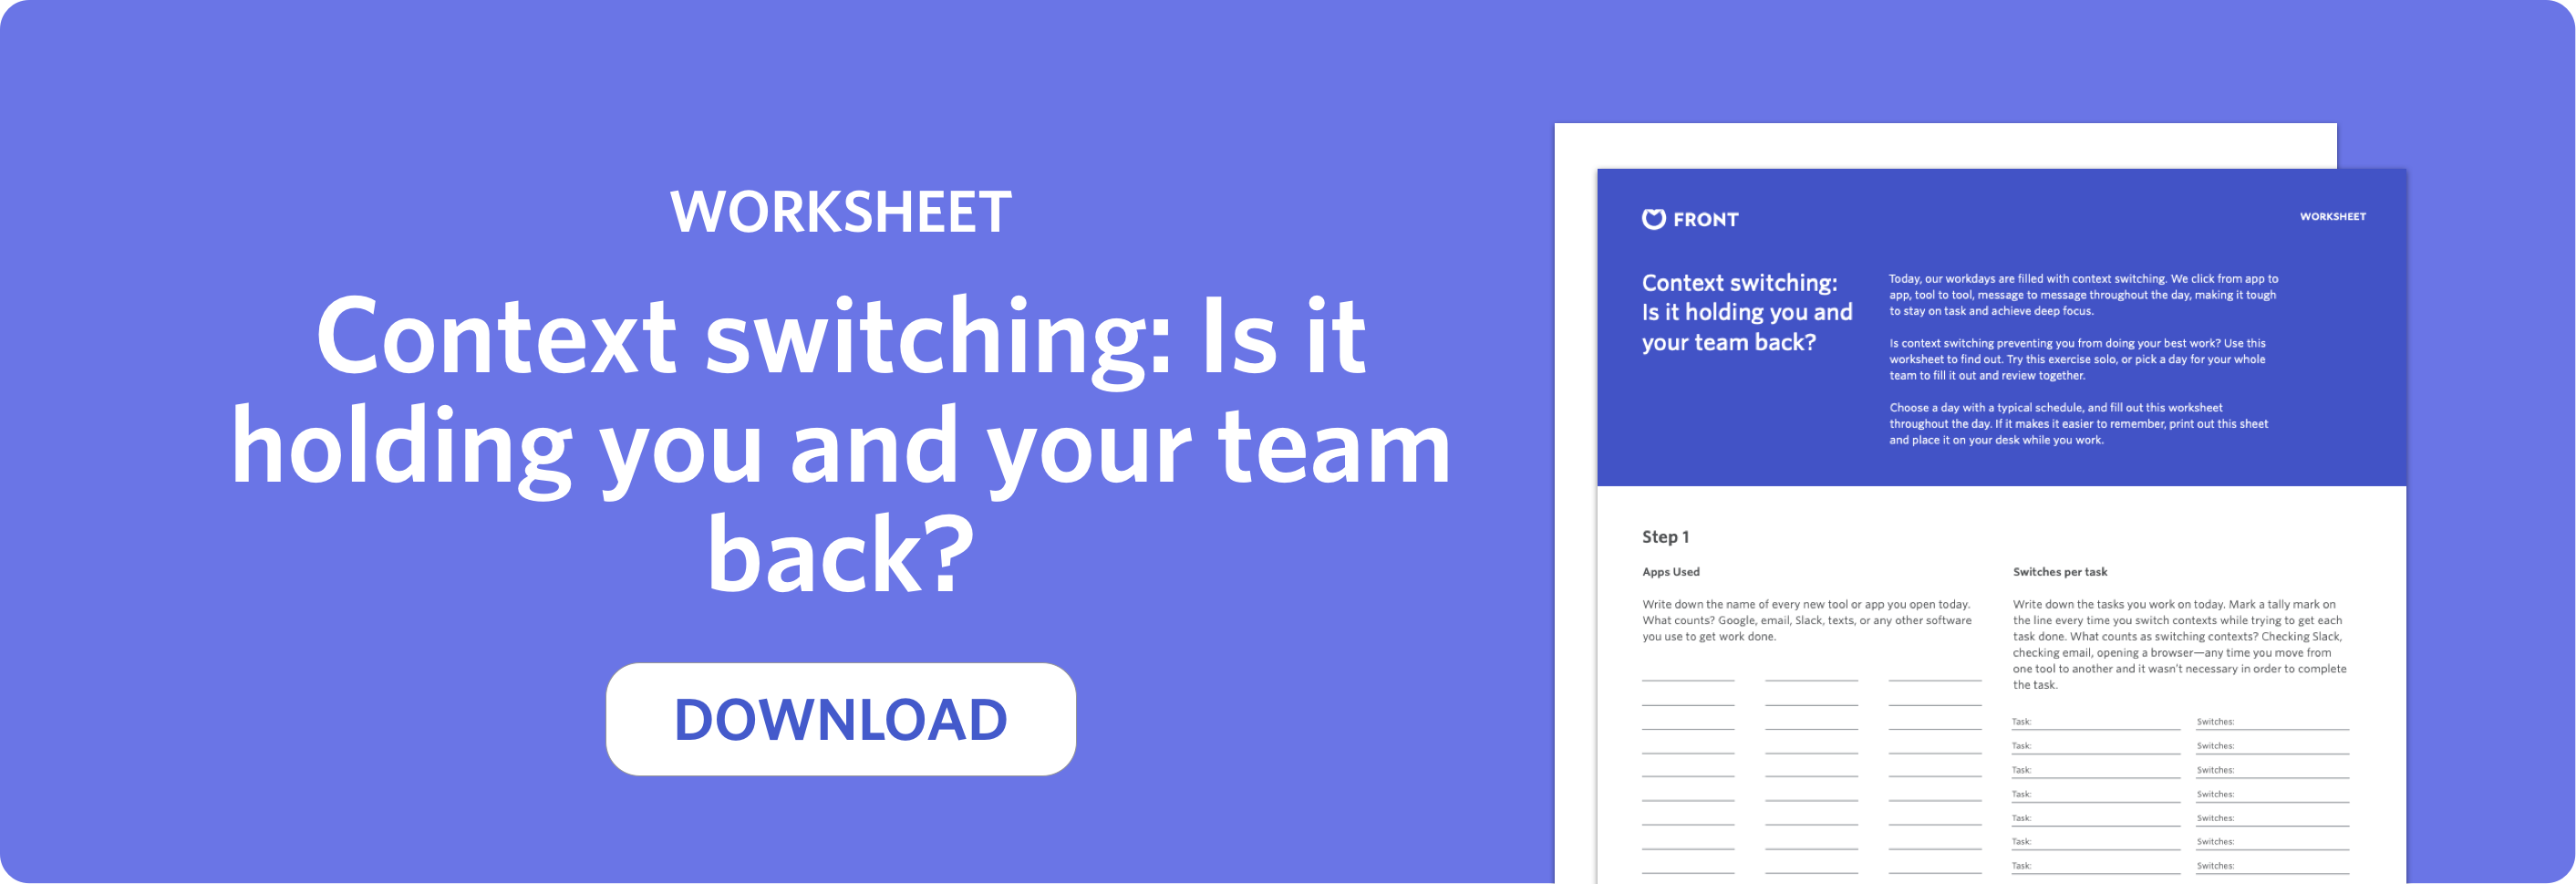 context switching worksheet